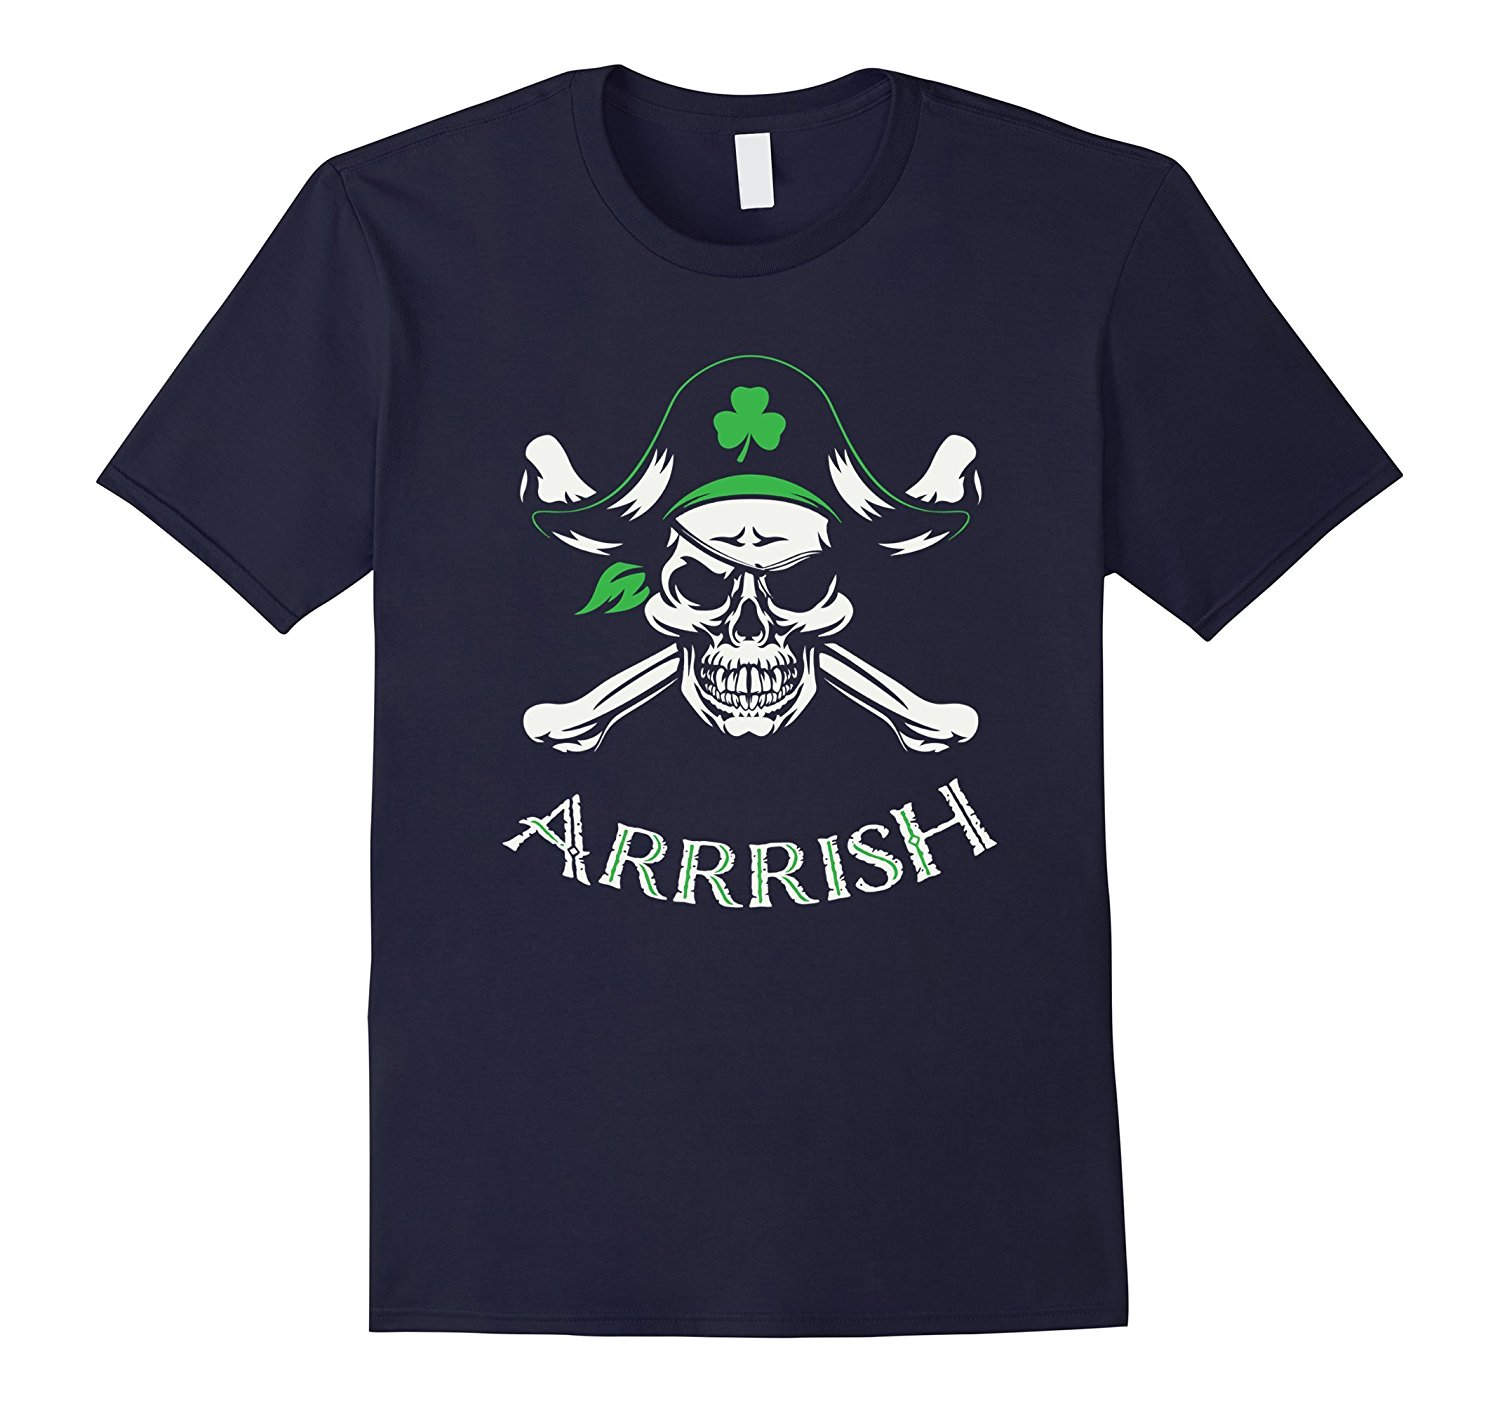 Arrish Irish Pirate St Patricks Day Shirt Novelty Gift Ideas